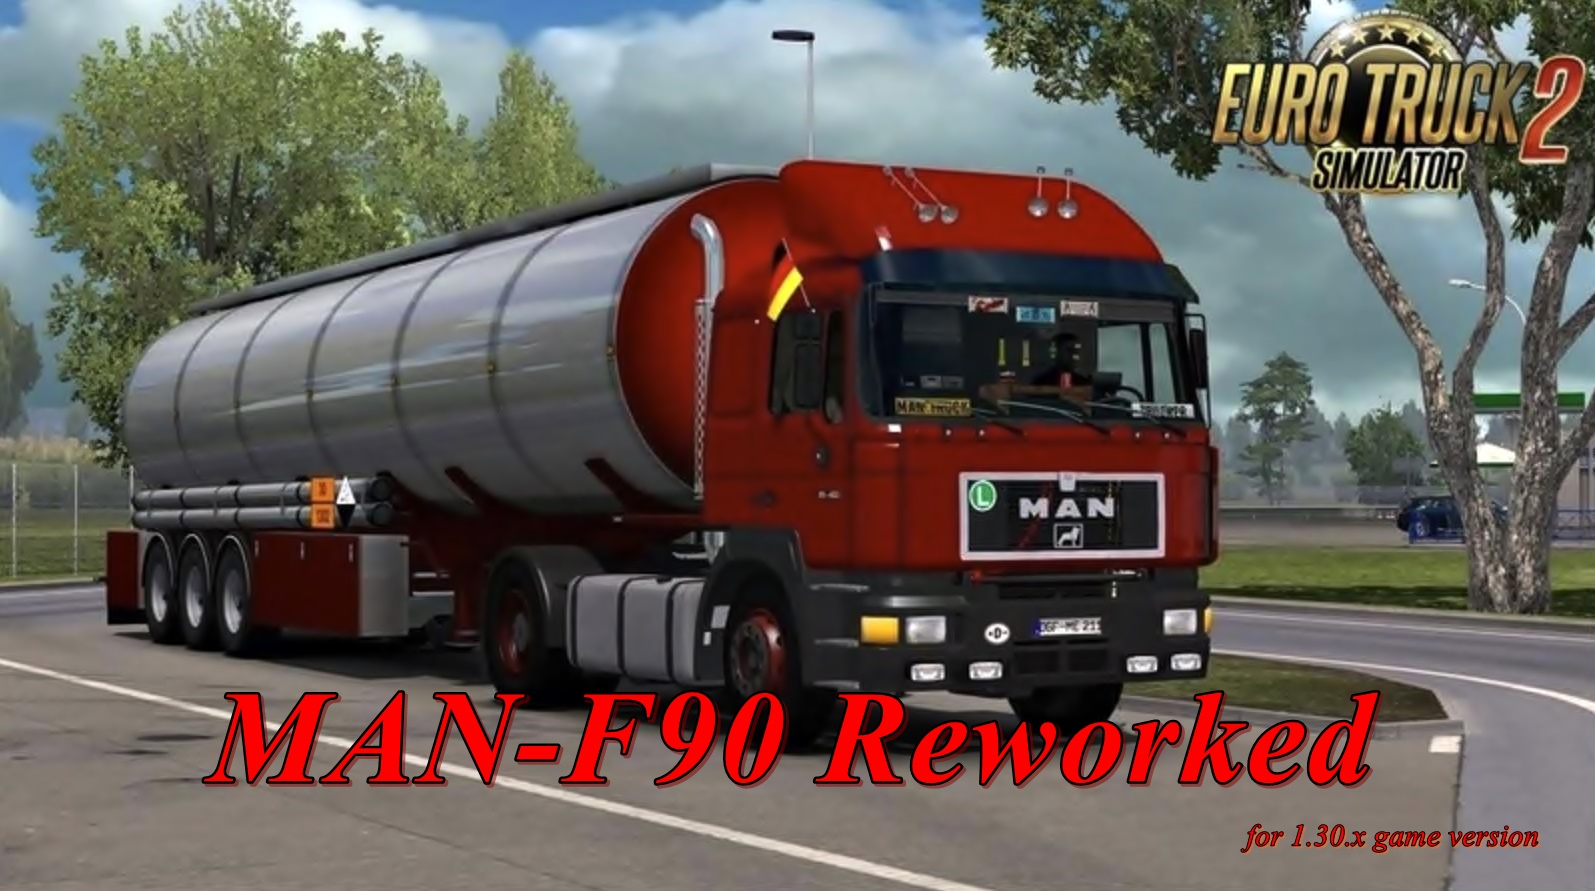 MAN-F90 Reworked v4.01.1 for Ets2